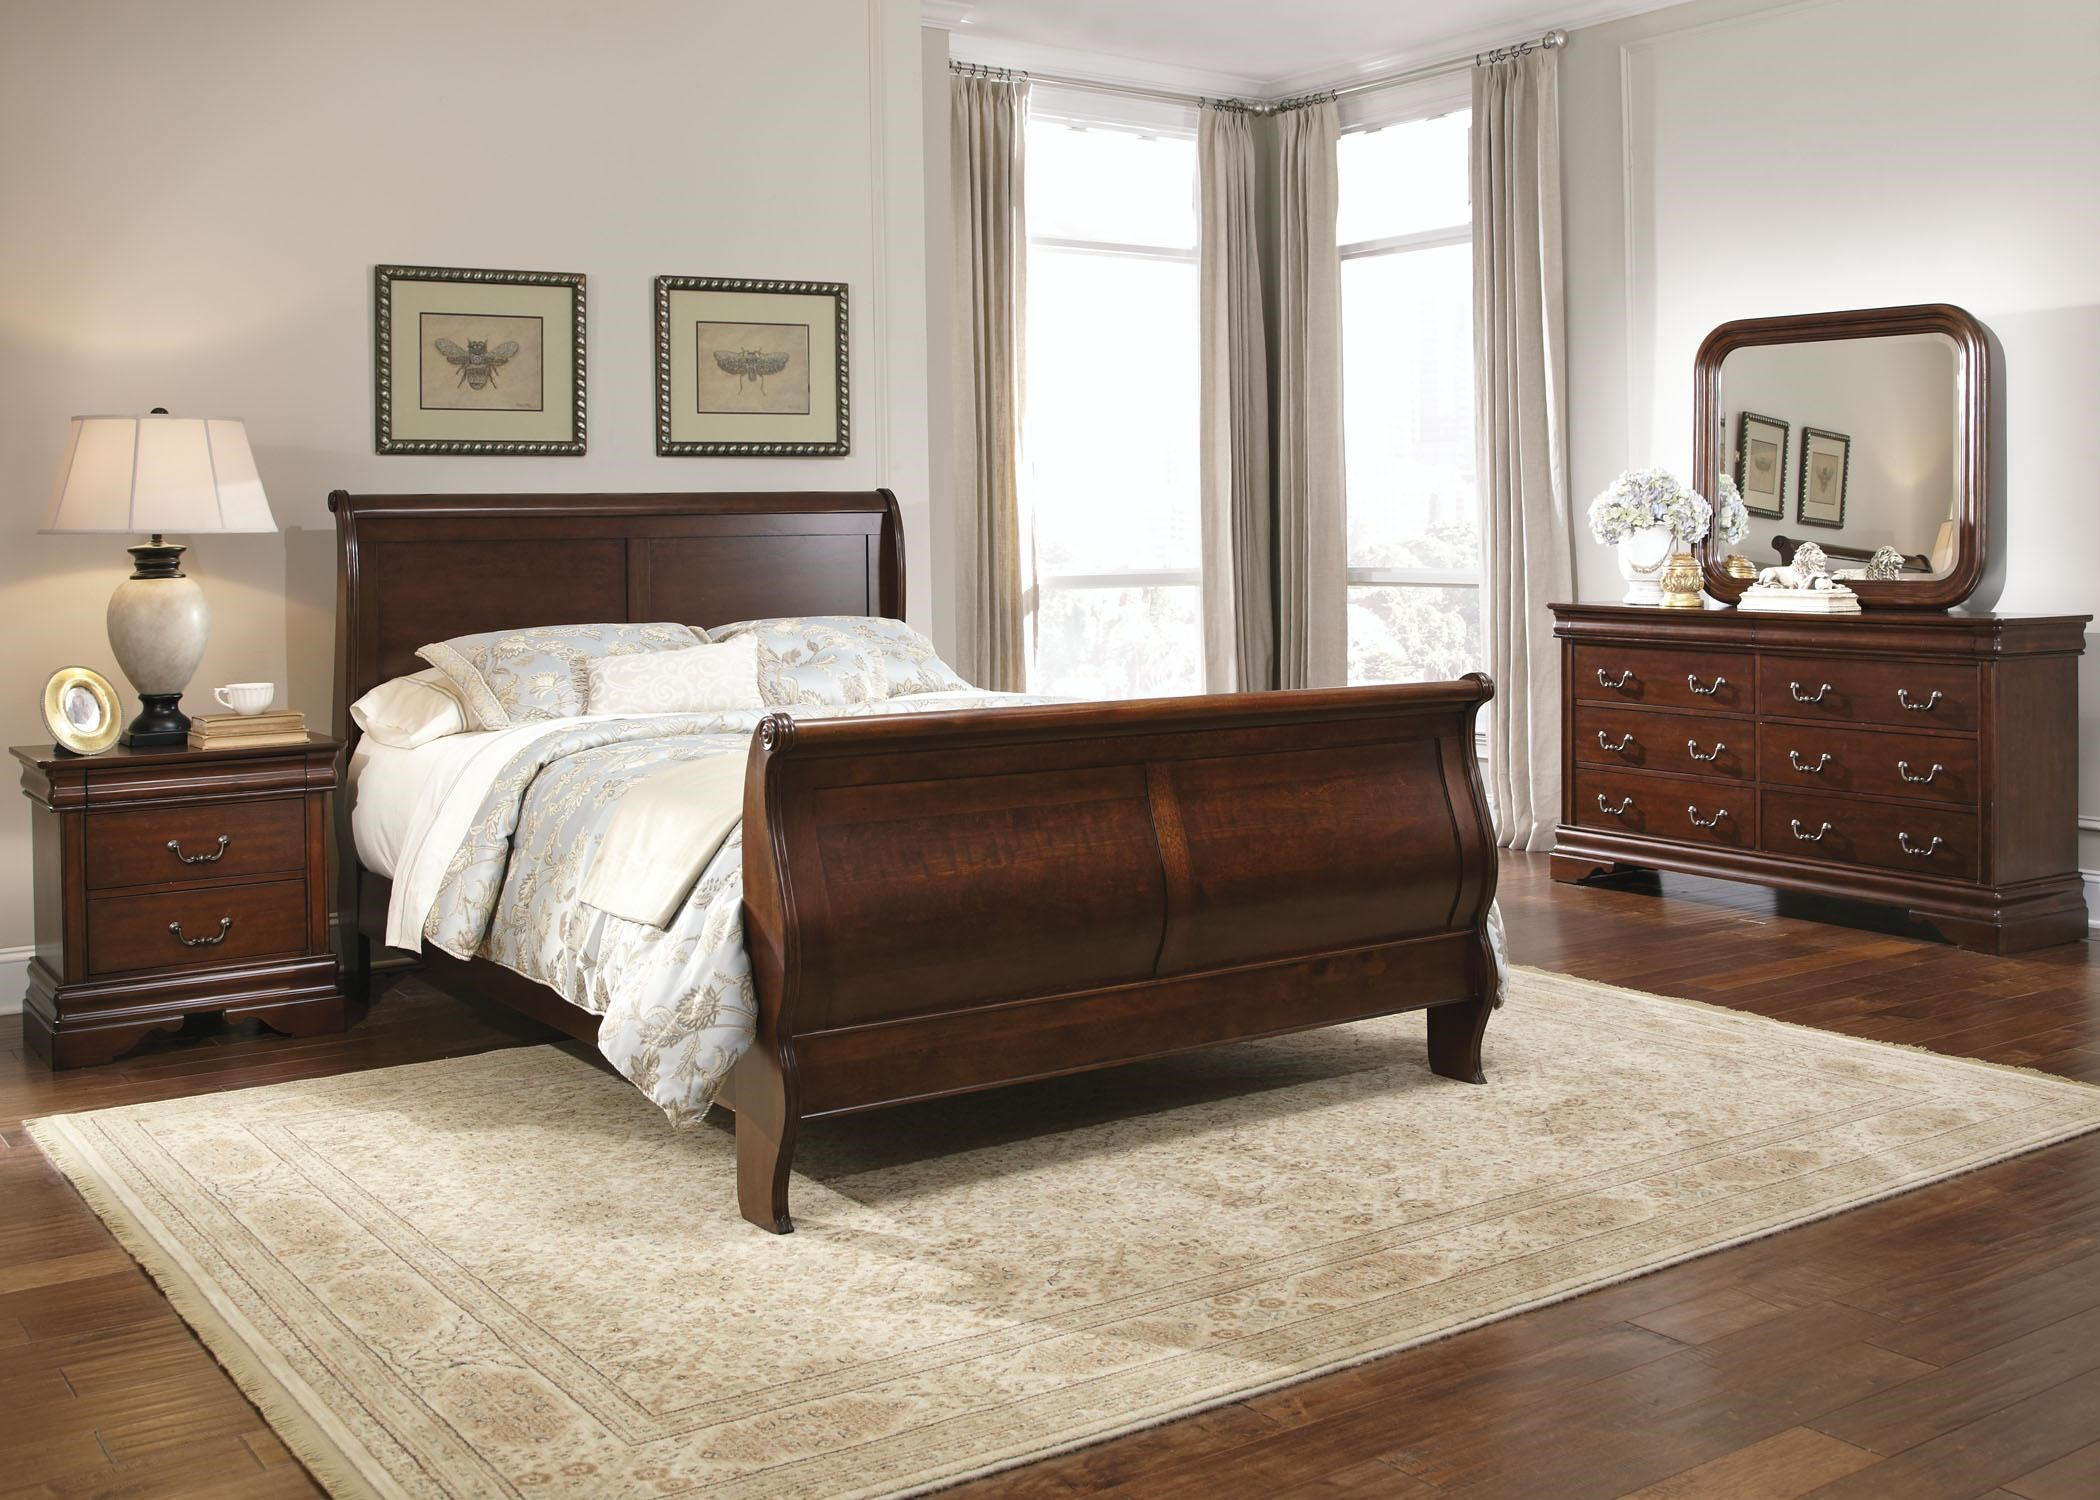 Attrayant Liberty Furniture Carriage Court Queen Sleigh Bed, Dresser U0026 Mirror, ...